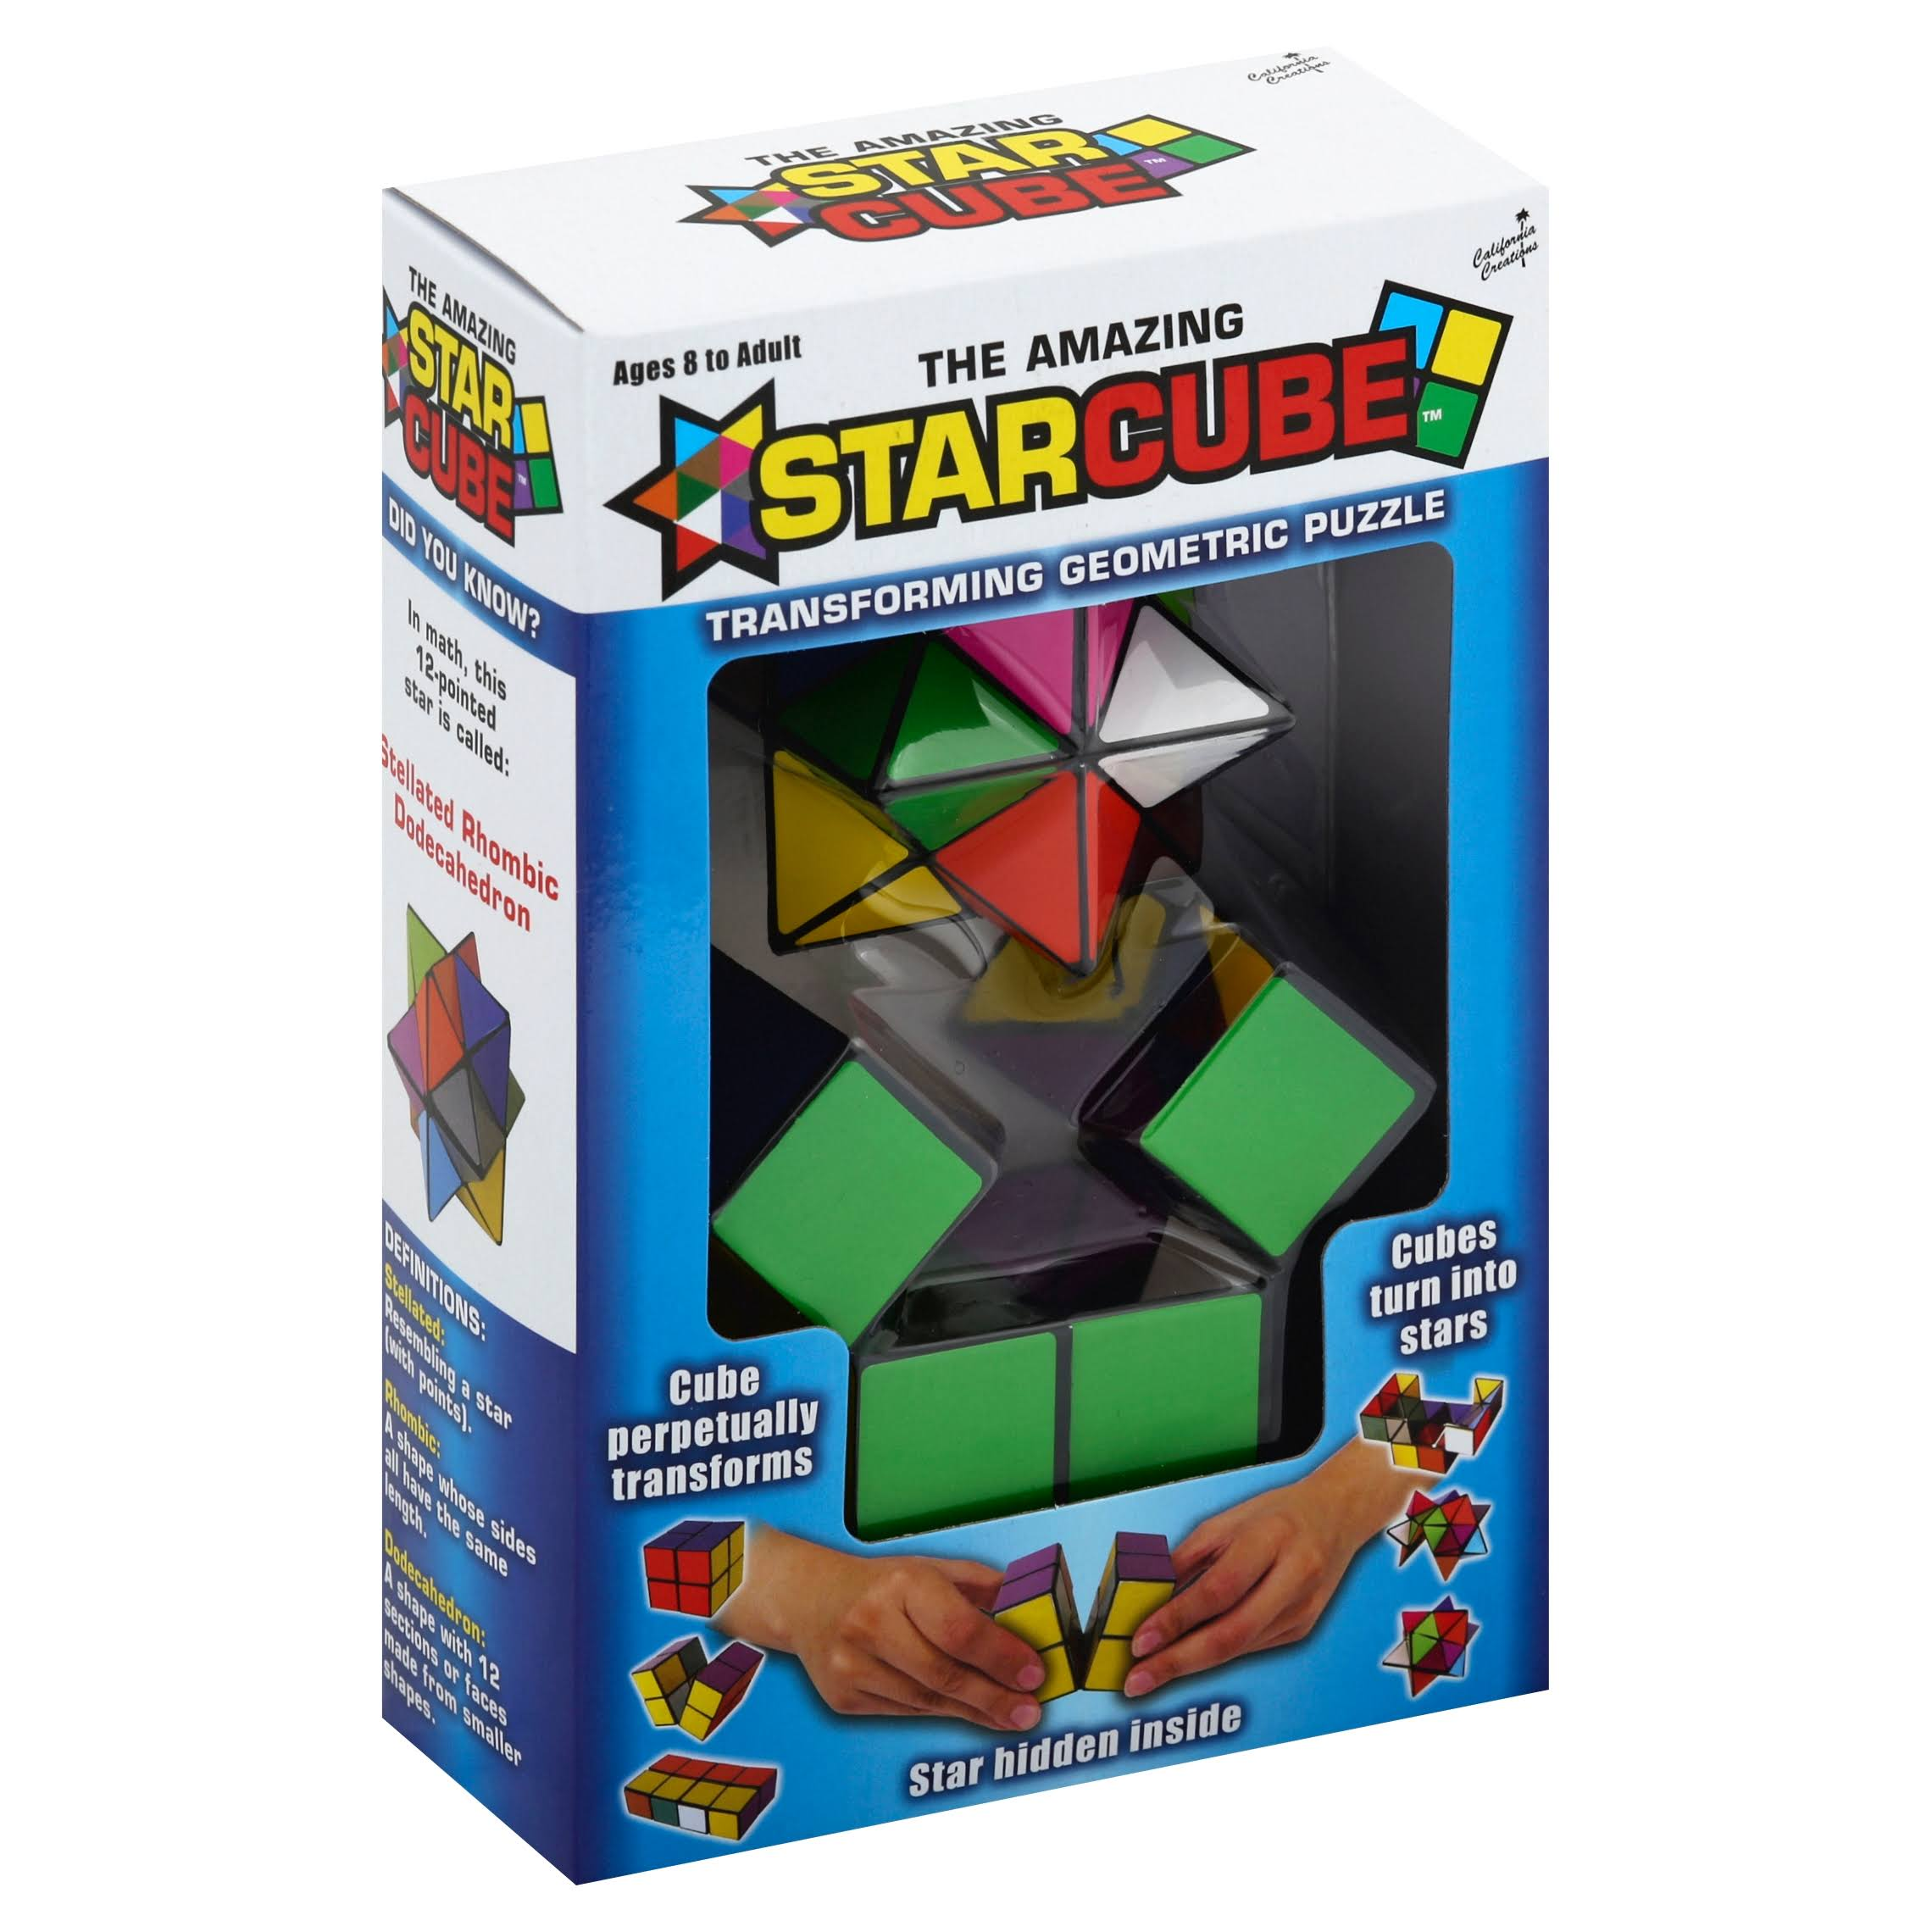 The Amazing Starcube Transforming Geometric Puzzle